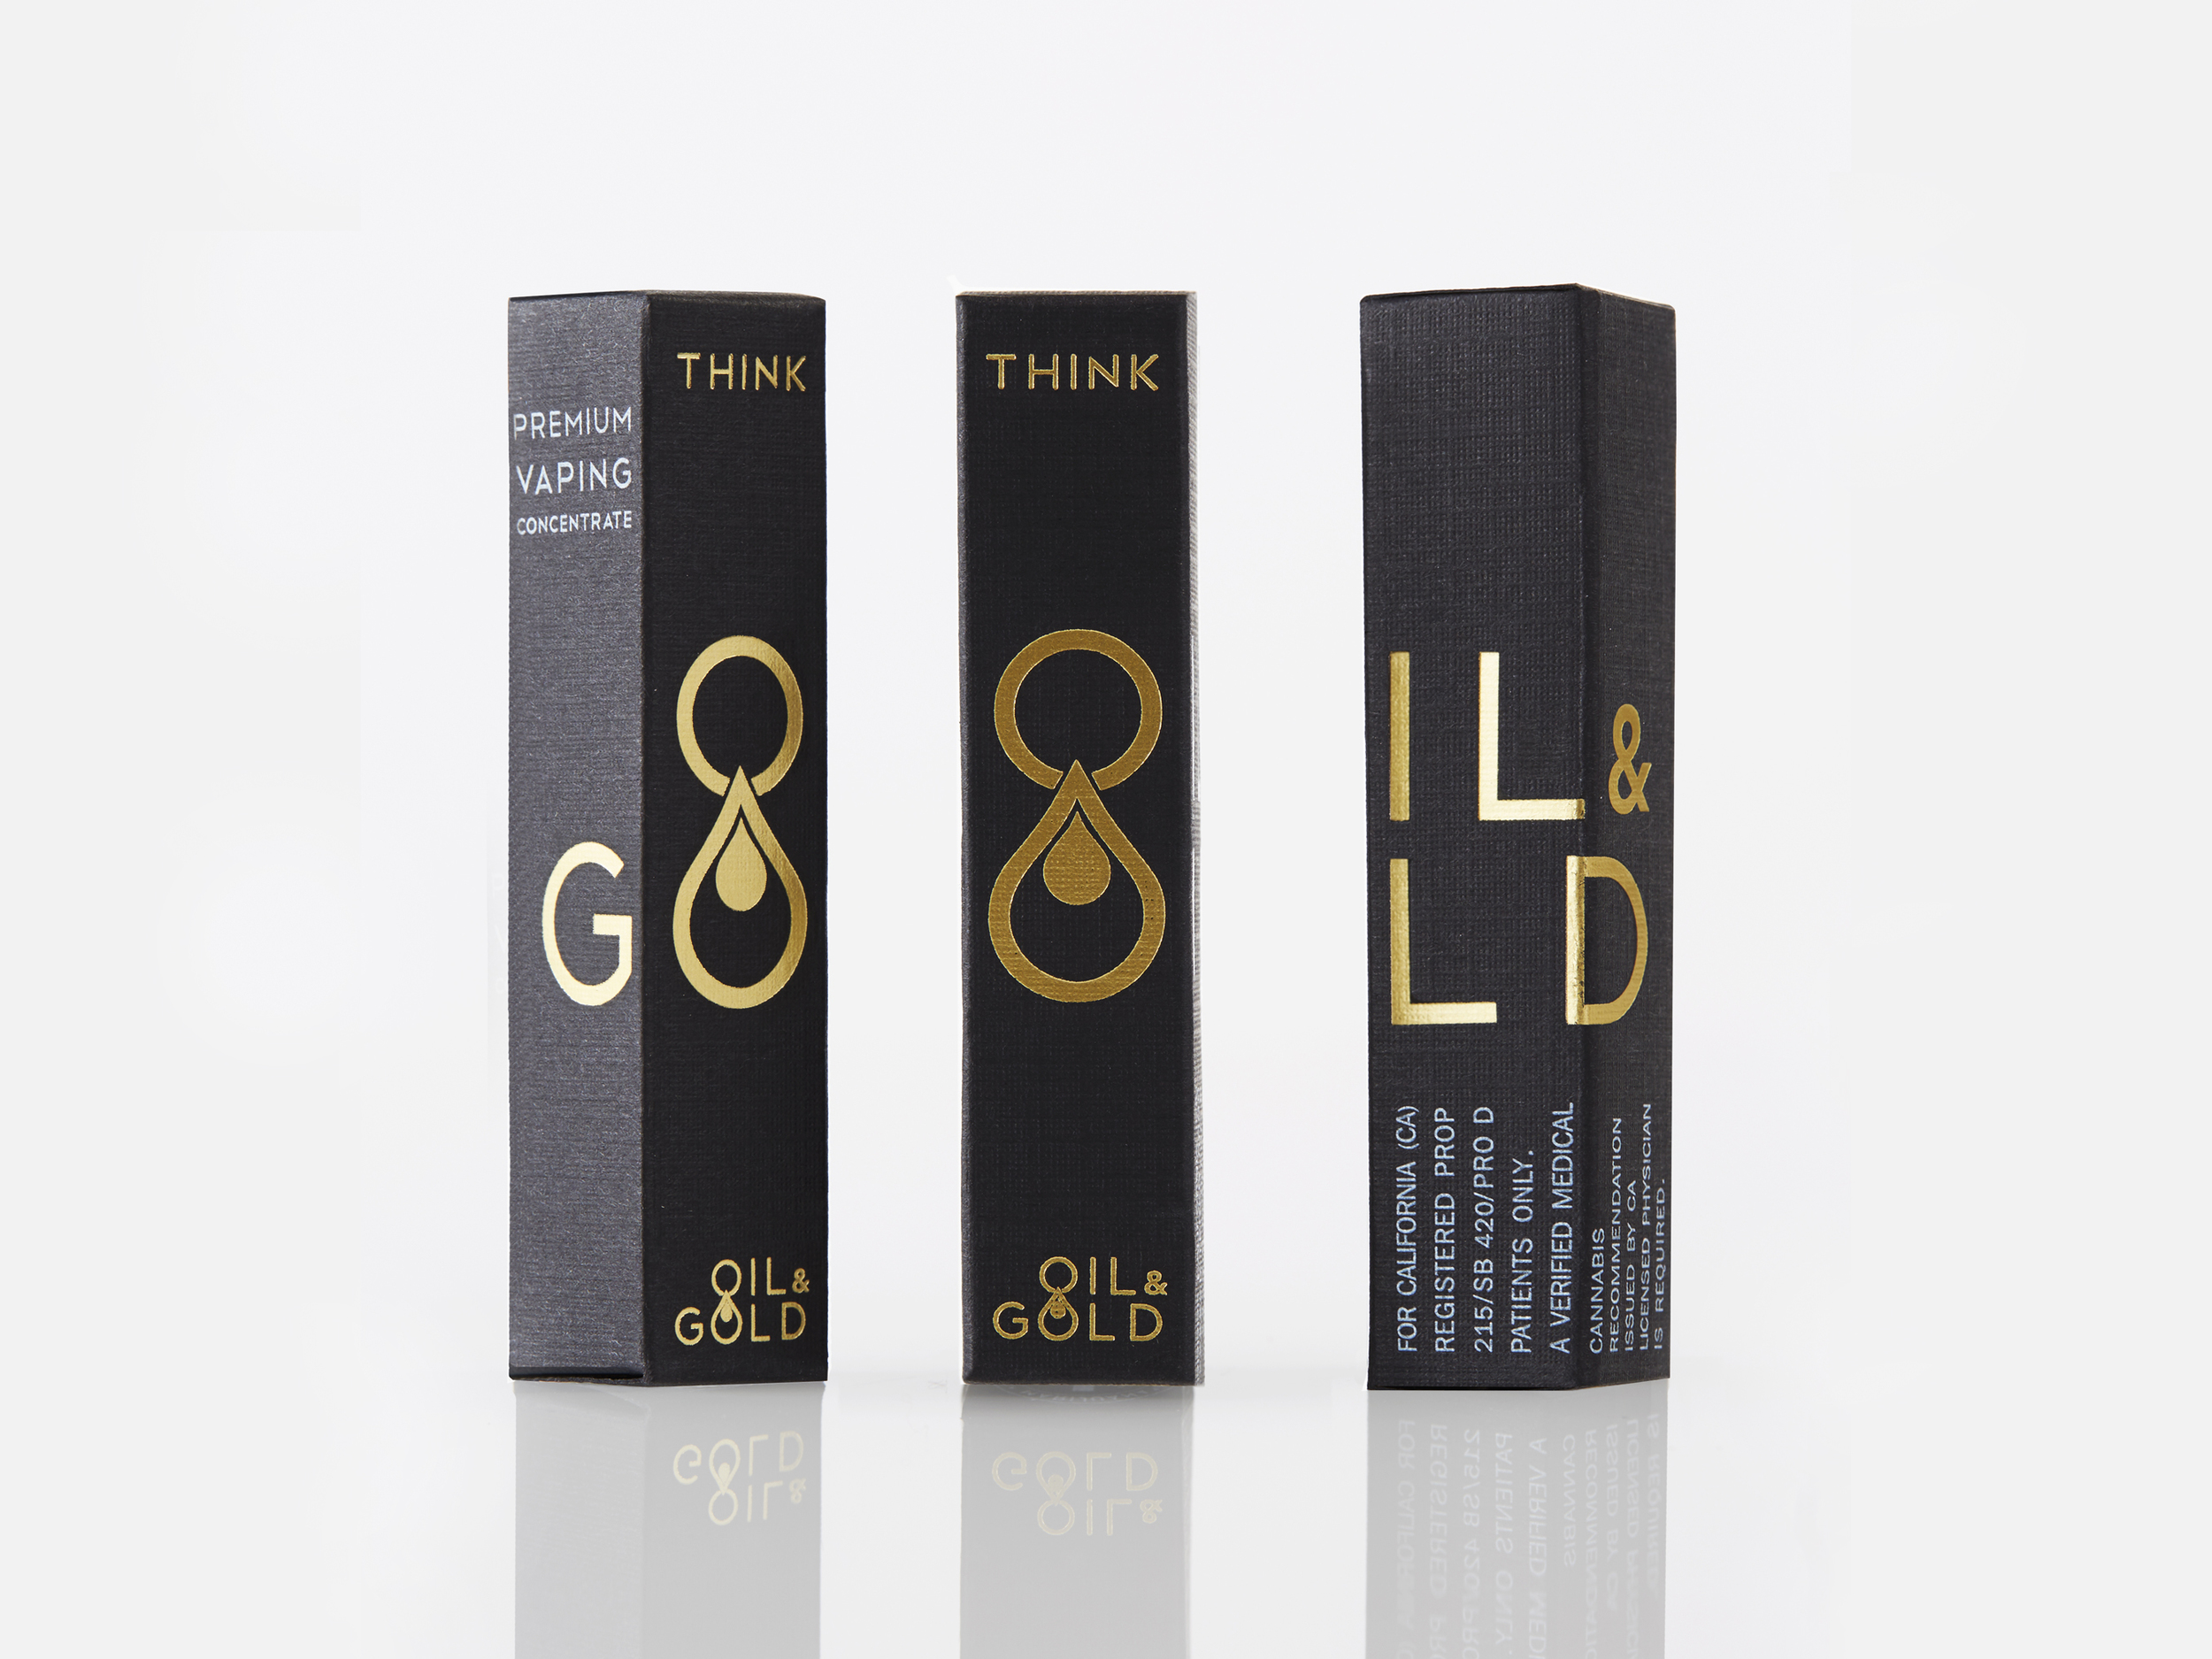 OIL & GOLD PACKAGING